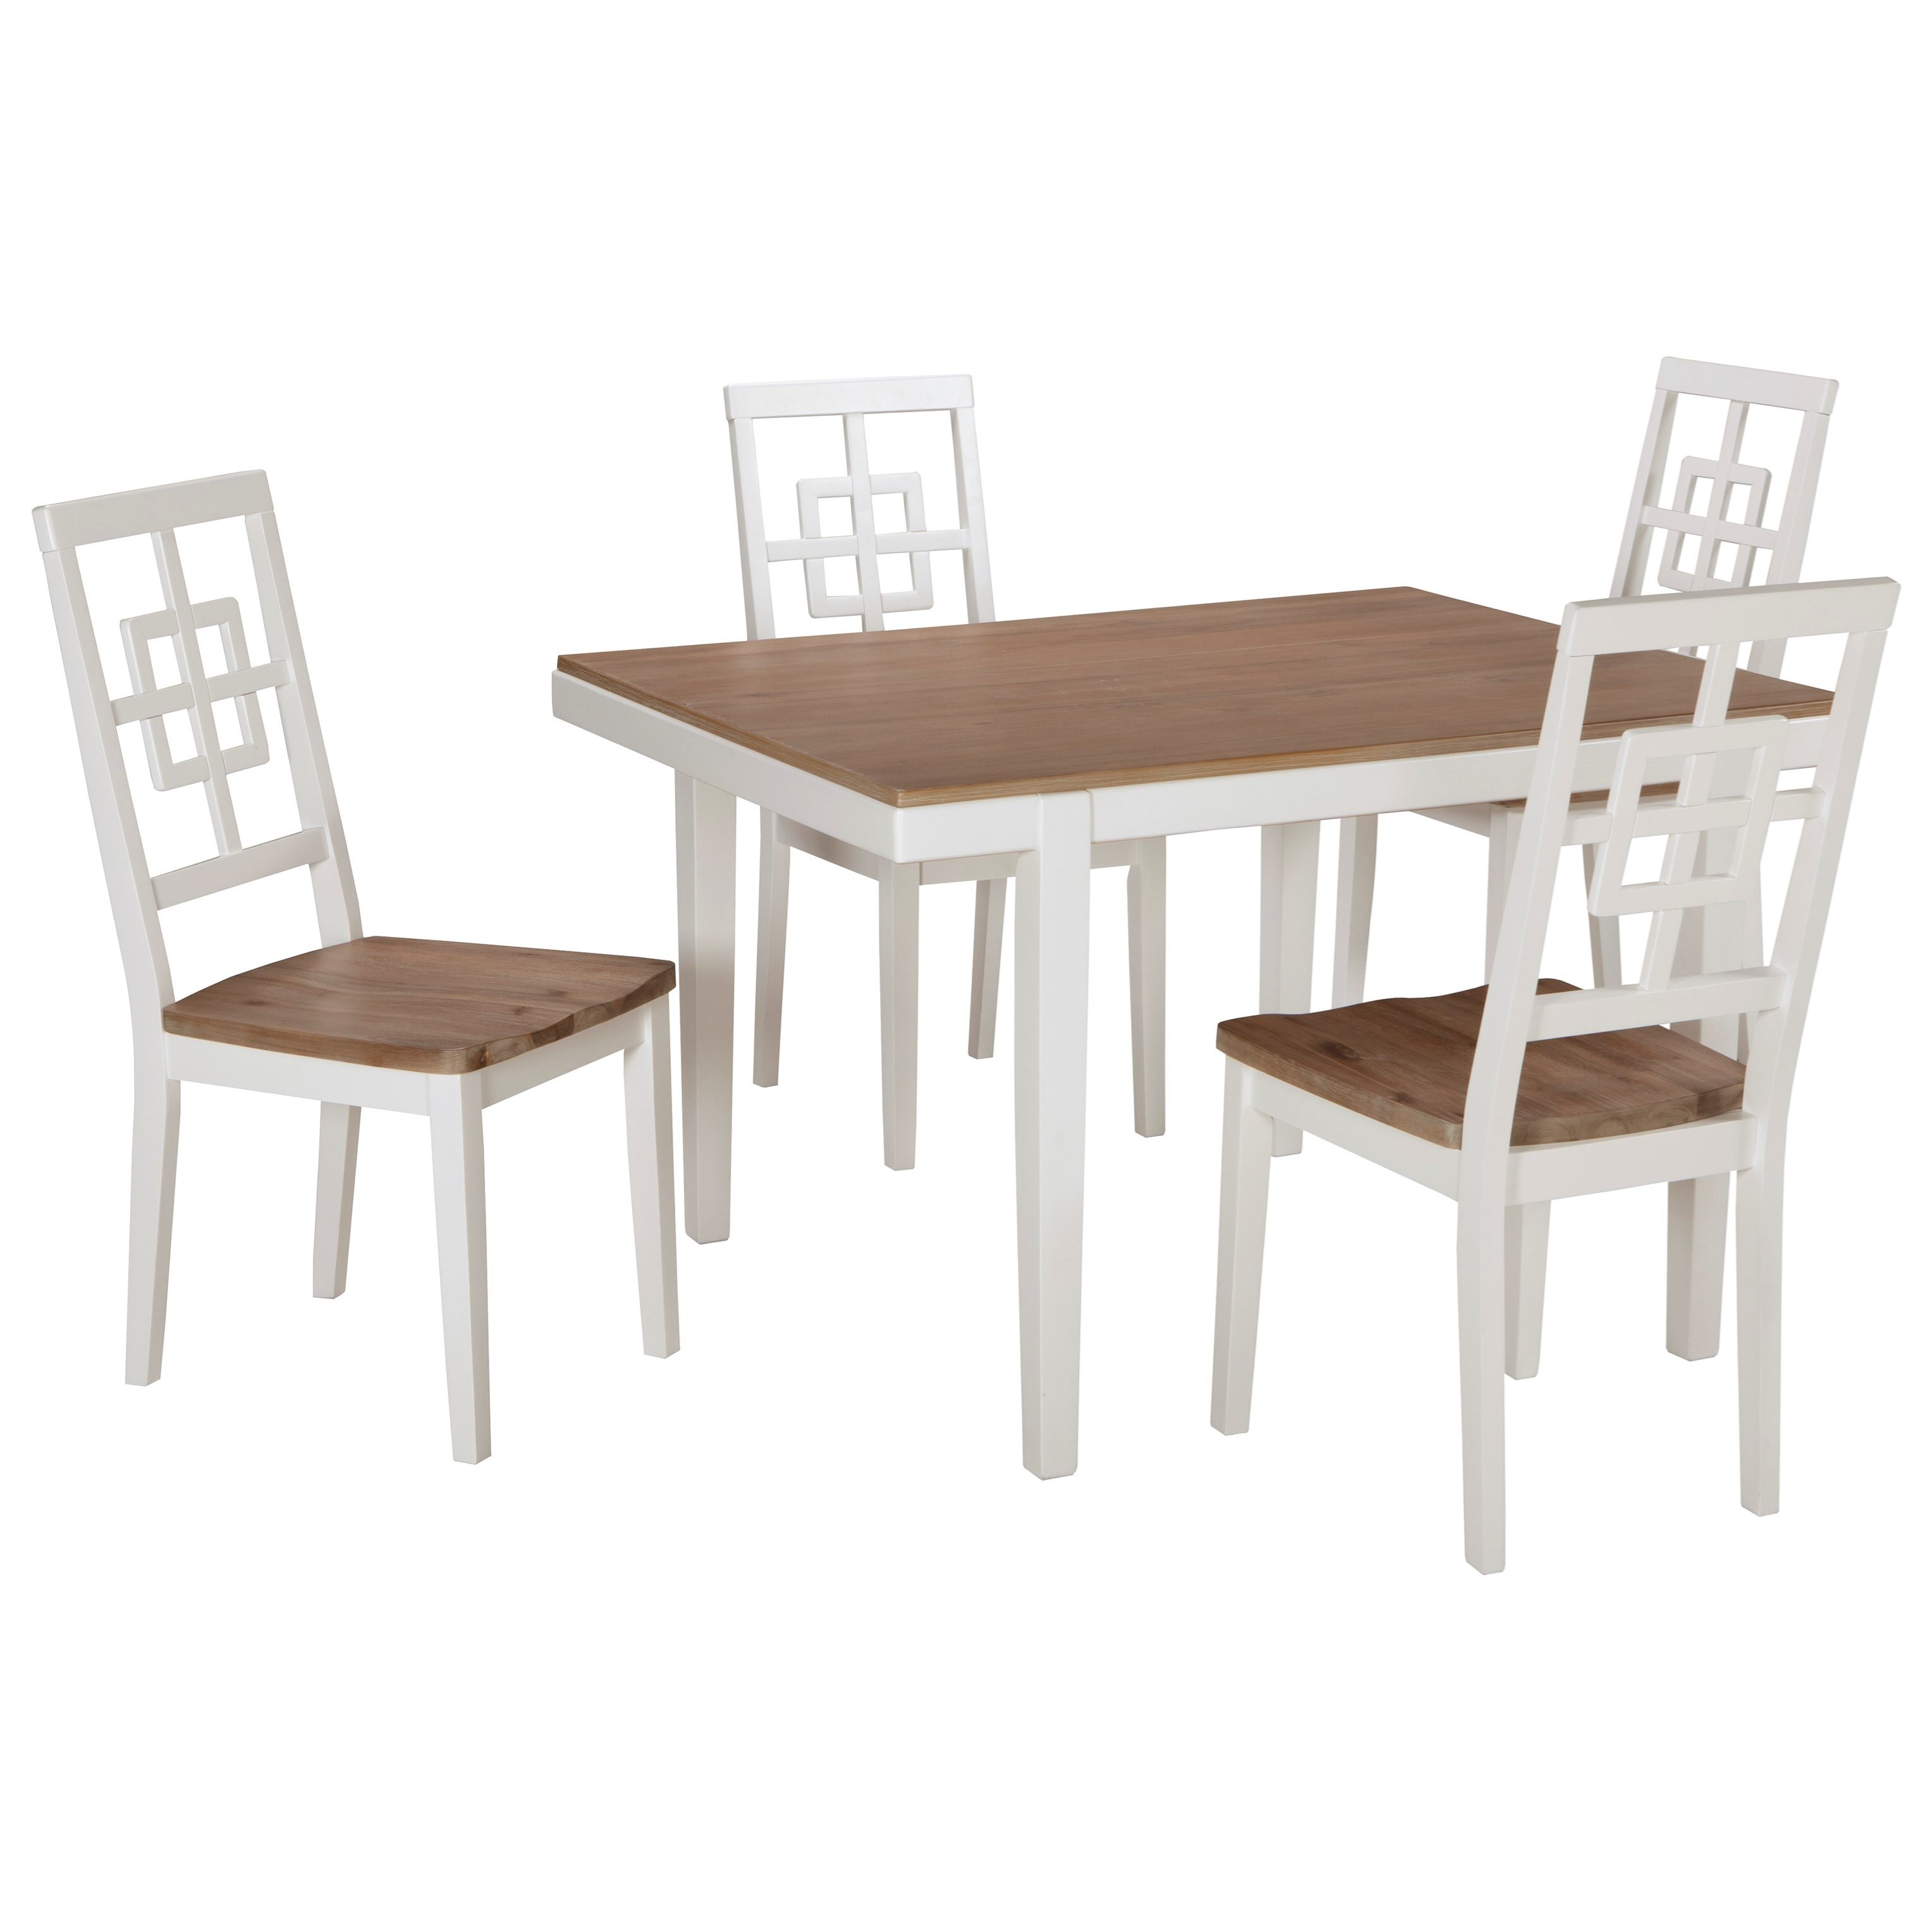 Signature design by ashley brovada d298 225 contemporary for 5 piece dining room set with bench